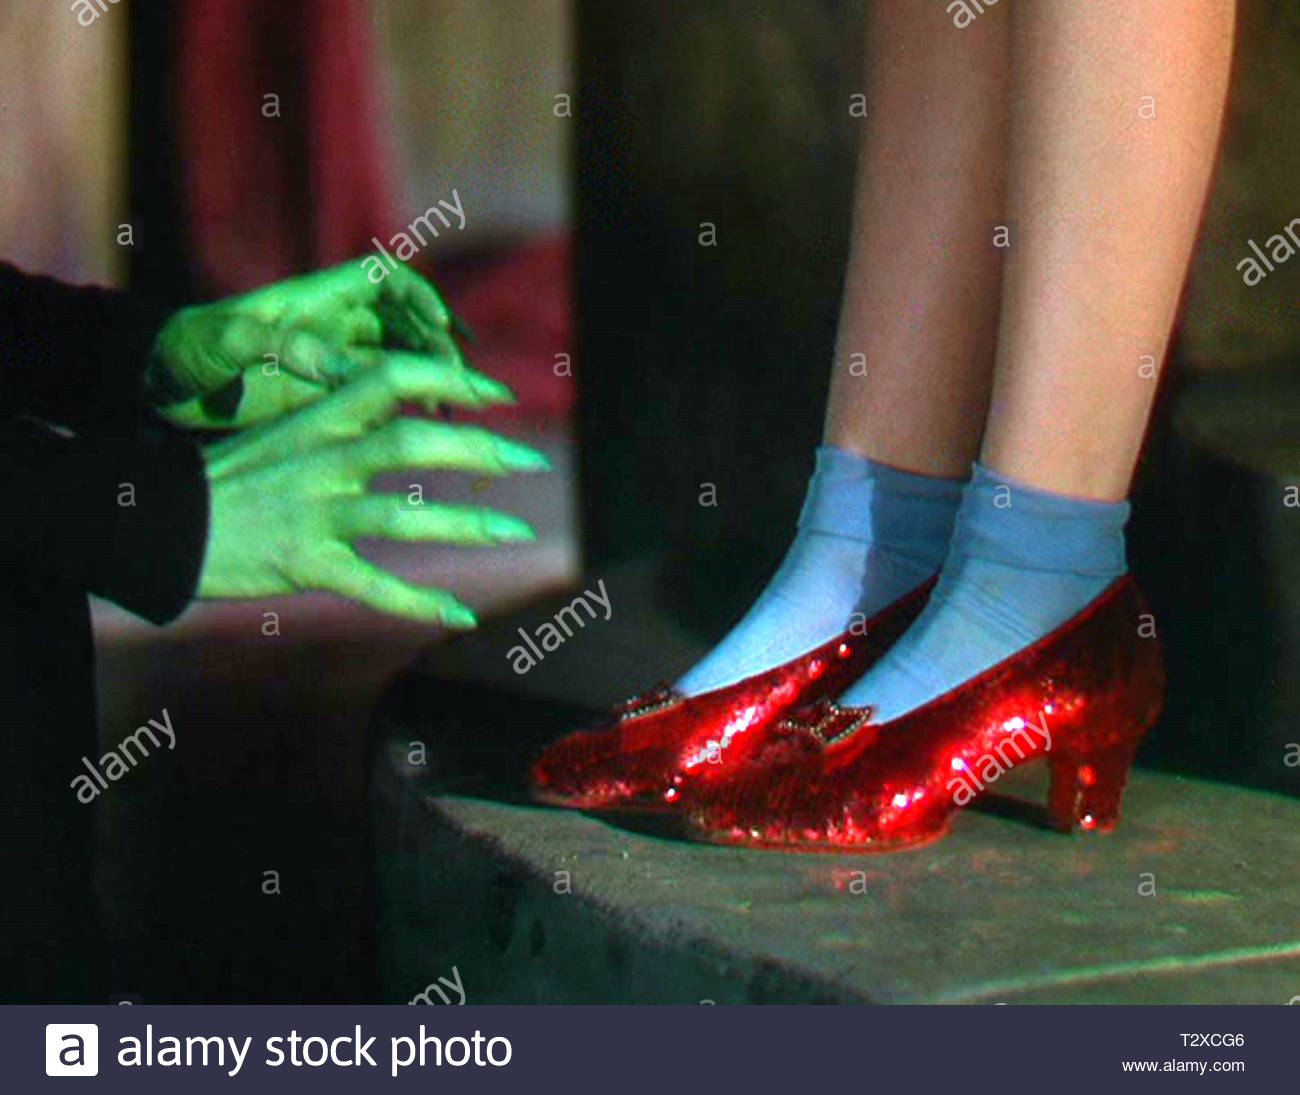 d55662c9305 Ruby Slippers Stock Photos   Ruby Slippers Stock Images - Alamy